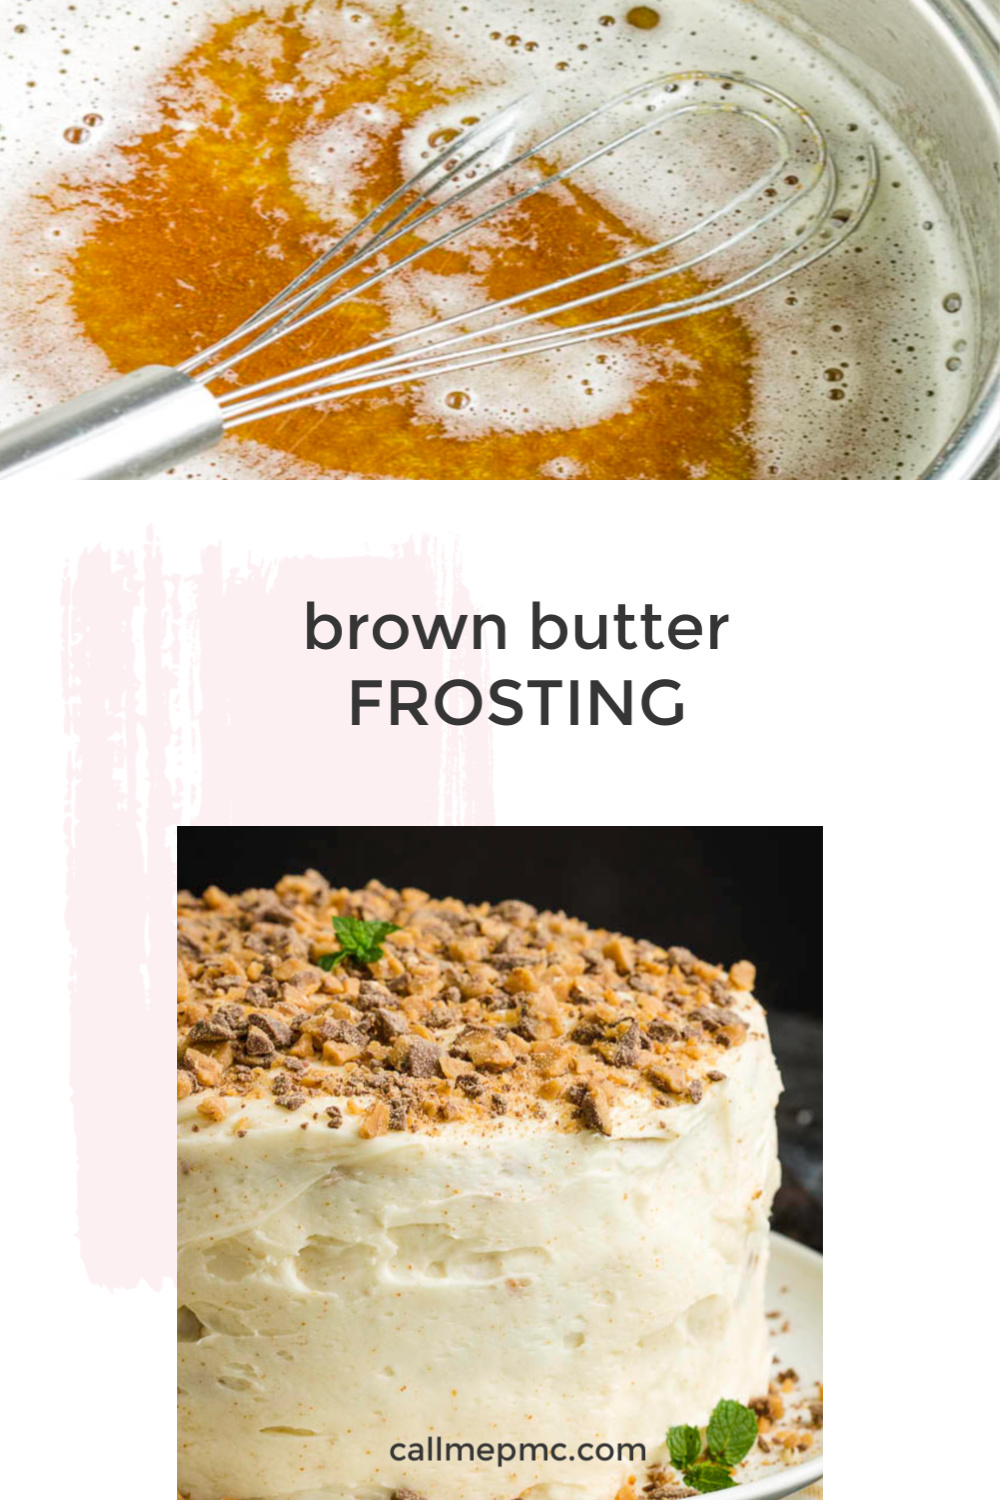 Brown Butter Frosting Recipe is flavored with brown butter for a delicious frosting that's perfect on cakes, cupcakes, brownies, and more! #brownbutter #recipe #howto #brownbutterfrosting #frosting #butter via @pmctunejones